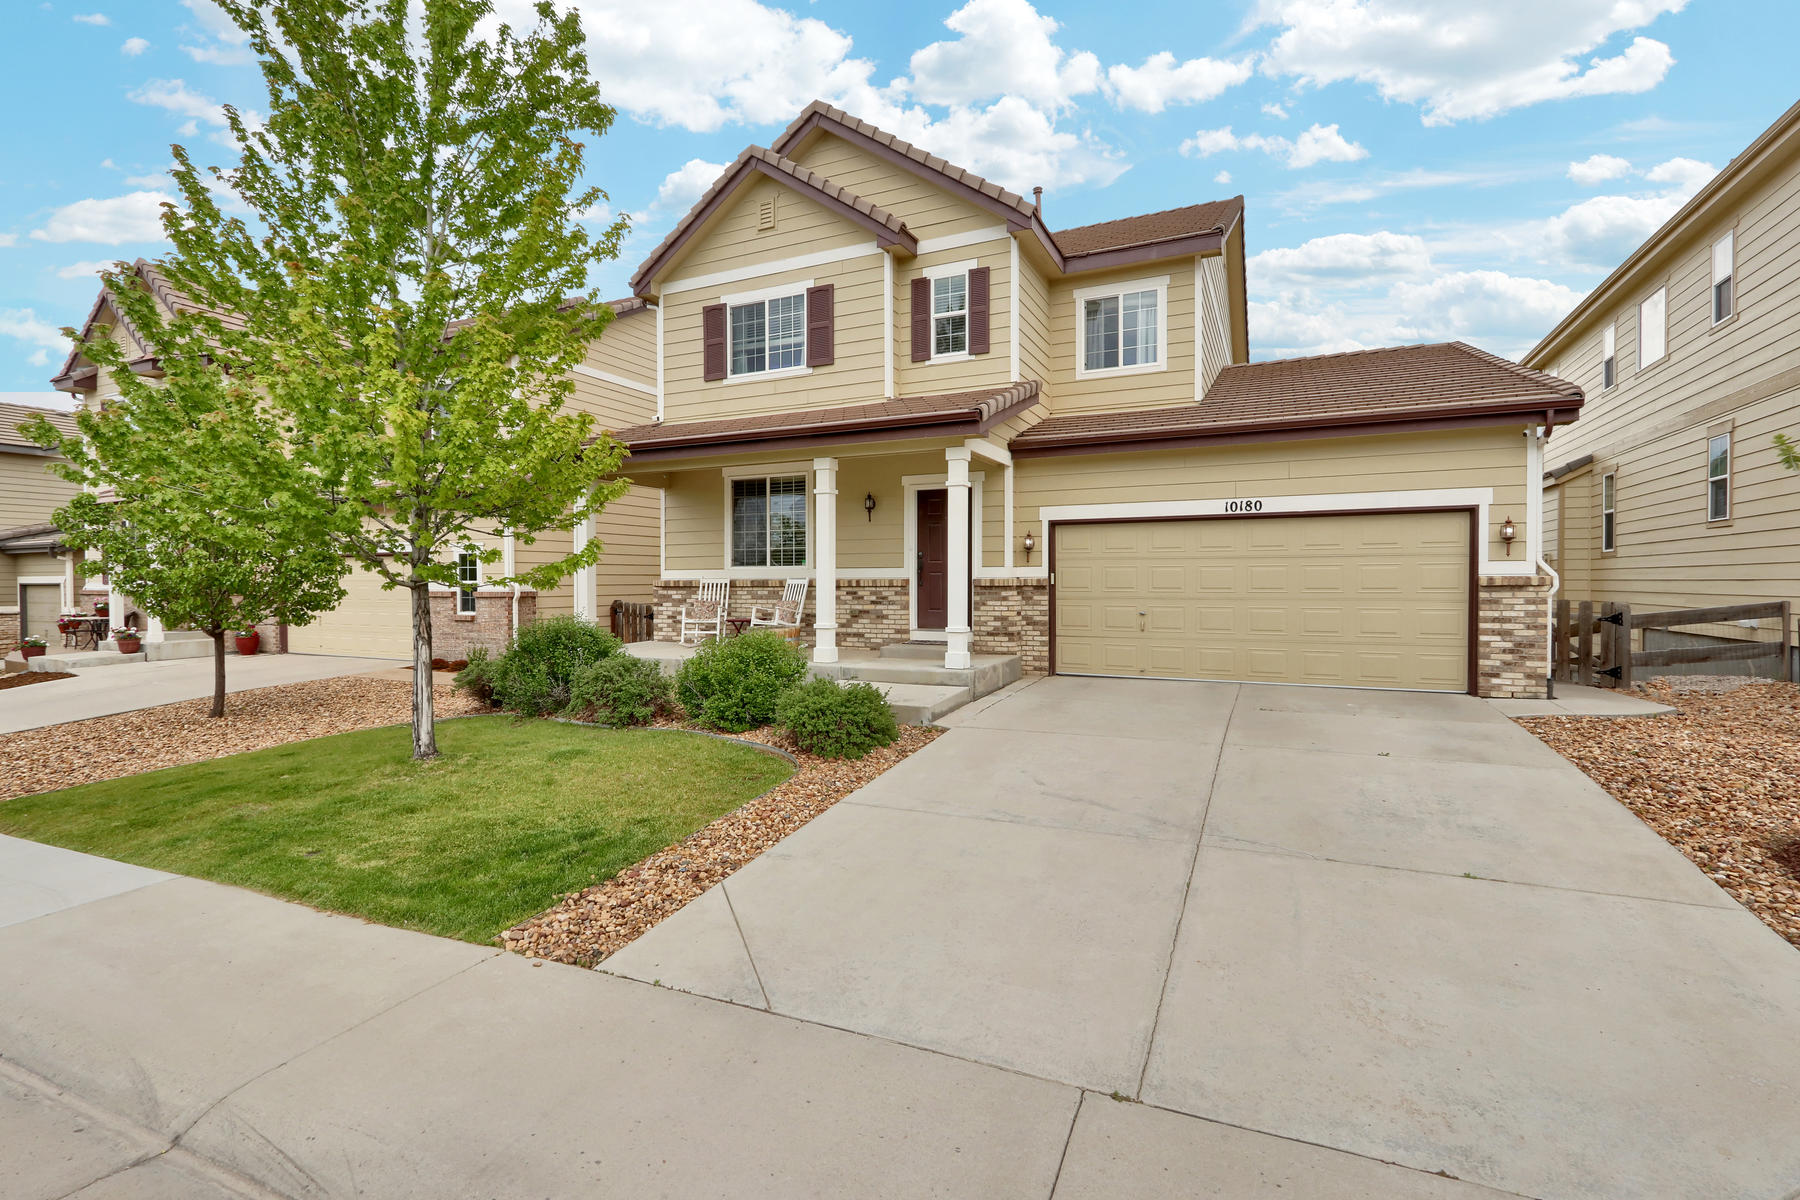 Single Family Homes για την Πώληση στο Cared for home with a fully finished, walk-out basement, backing to green space. 10180 Greenfield Cir, Parker, Κολοραντο 80134 Ηνωμένες Πολιτείες